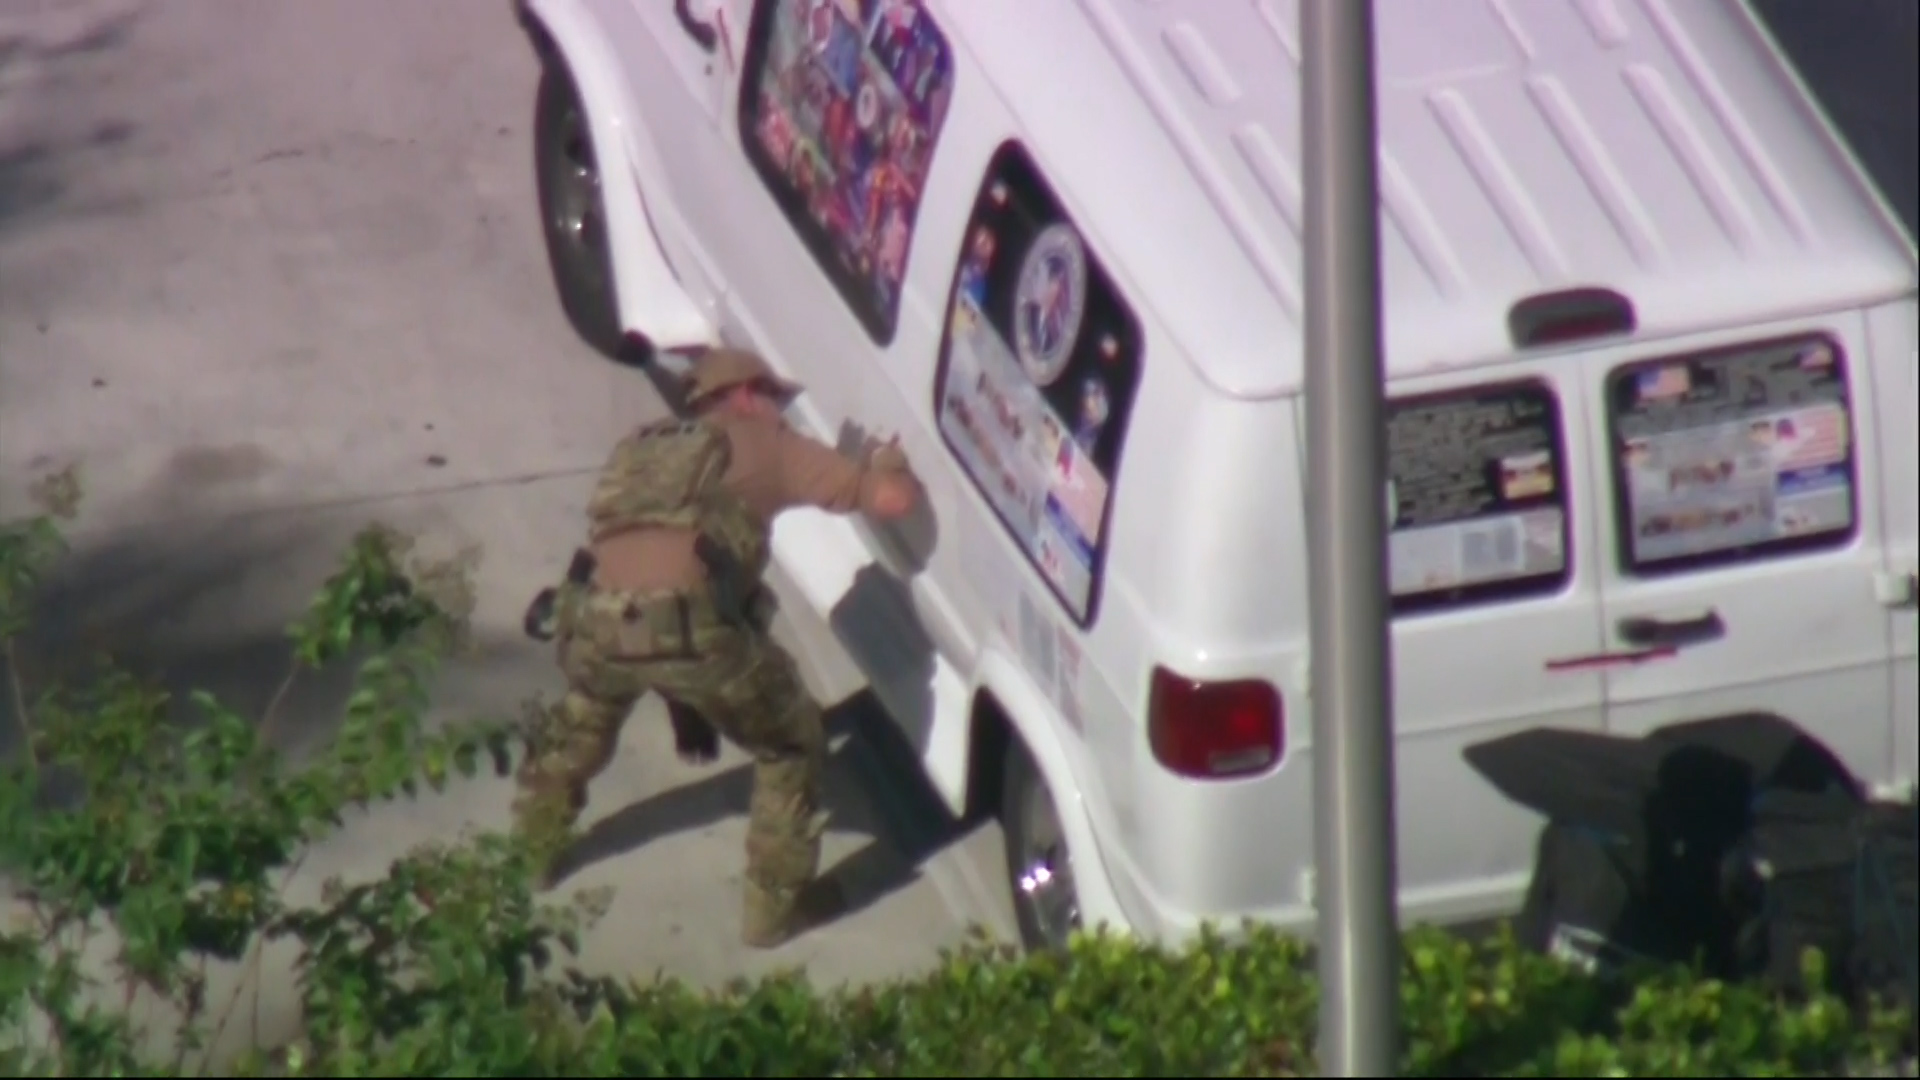 Authorities are seen in Plantation, Florida taking a man into custody in connection to the mailed package bombs.